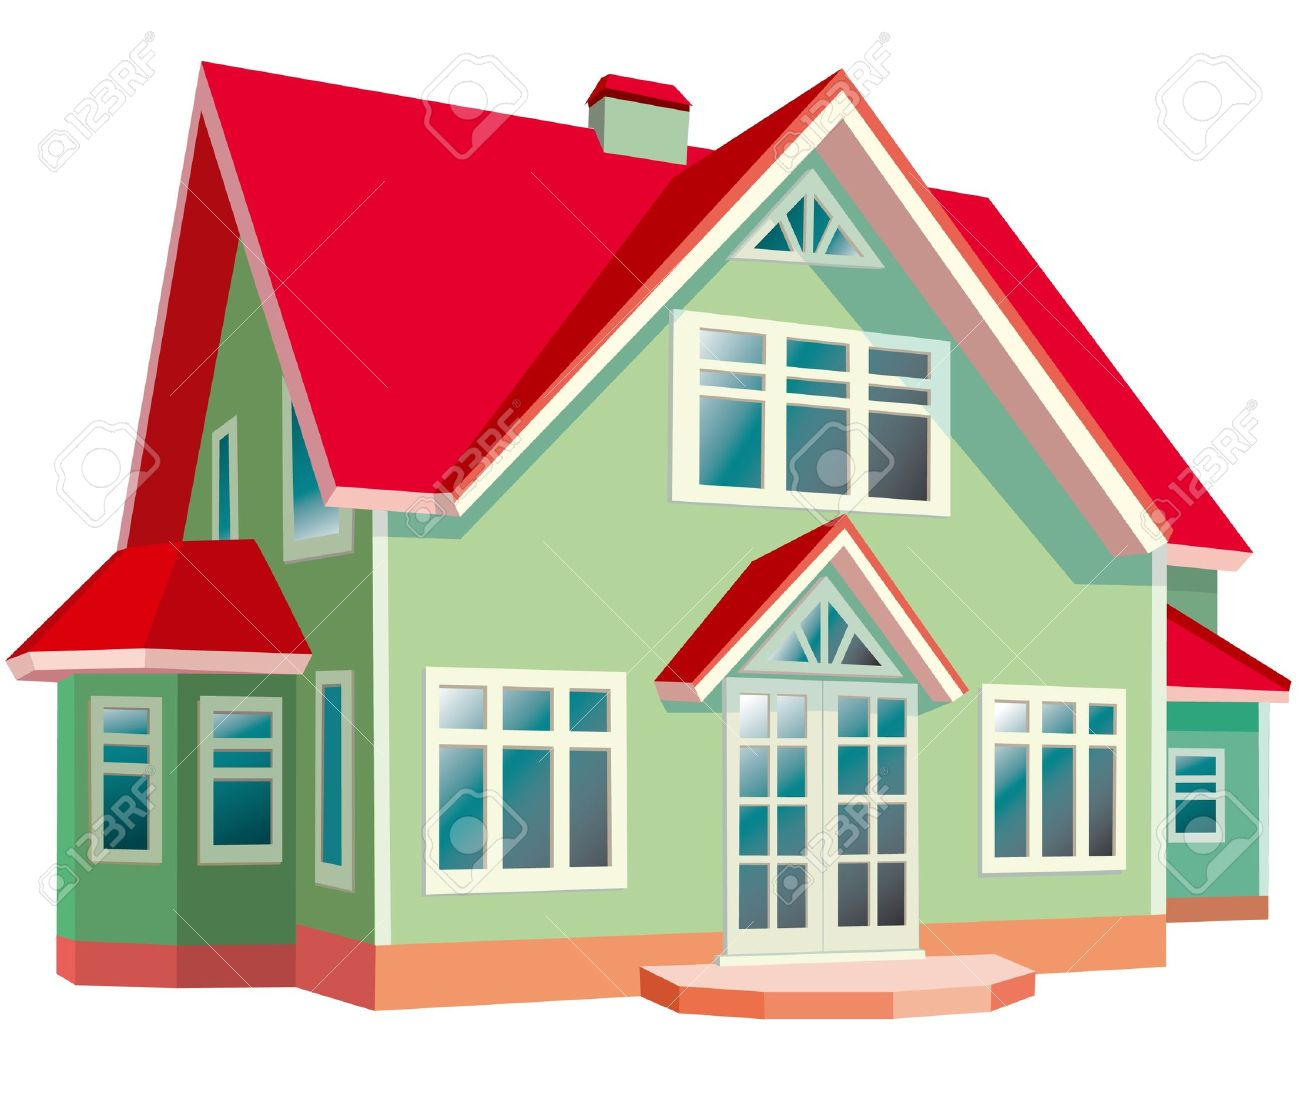 house with red roof on white background stock vector